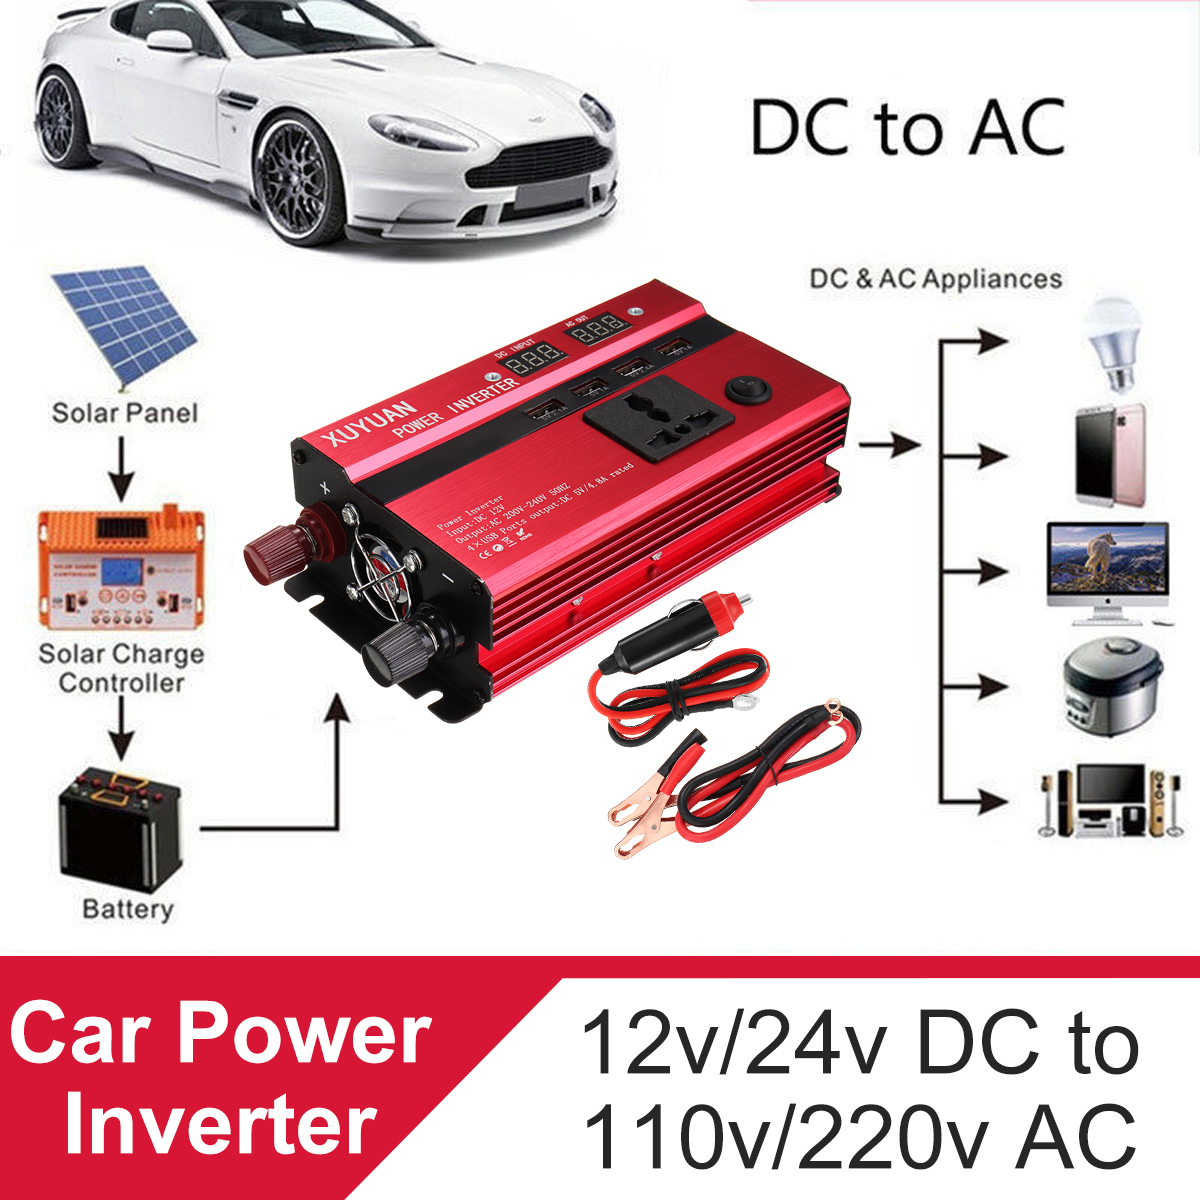 Peak 3000W 4 Type DC 12V/24V to AC 110V/220V Solar Power Inverter LED Modified Sine Wave Converter